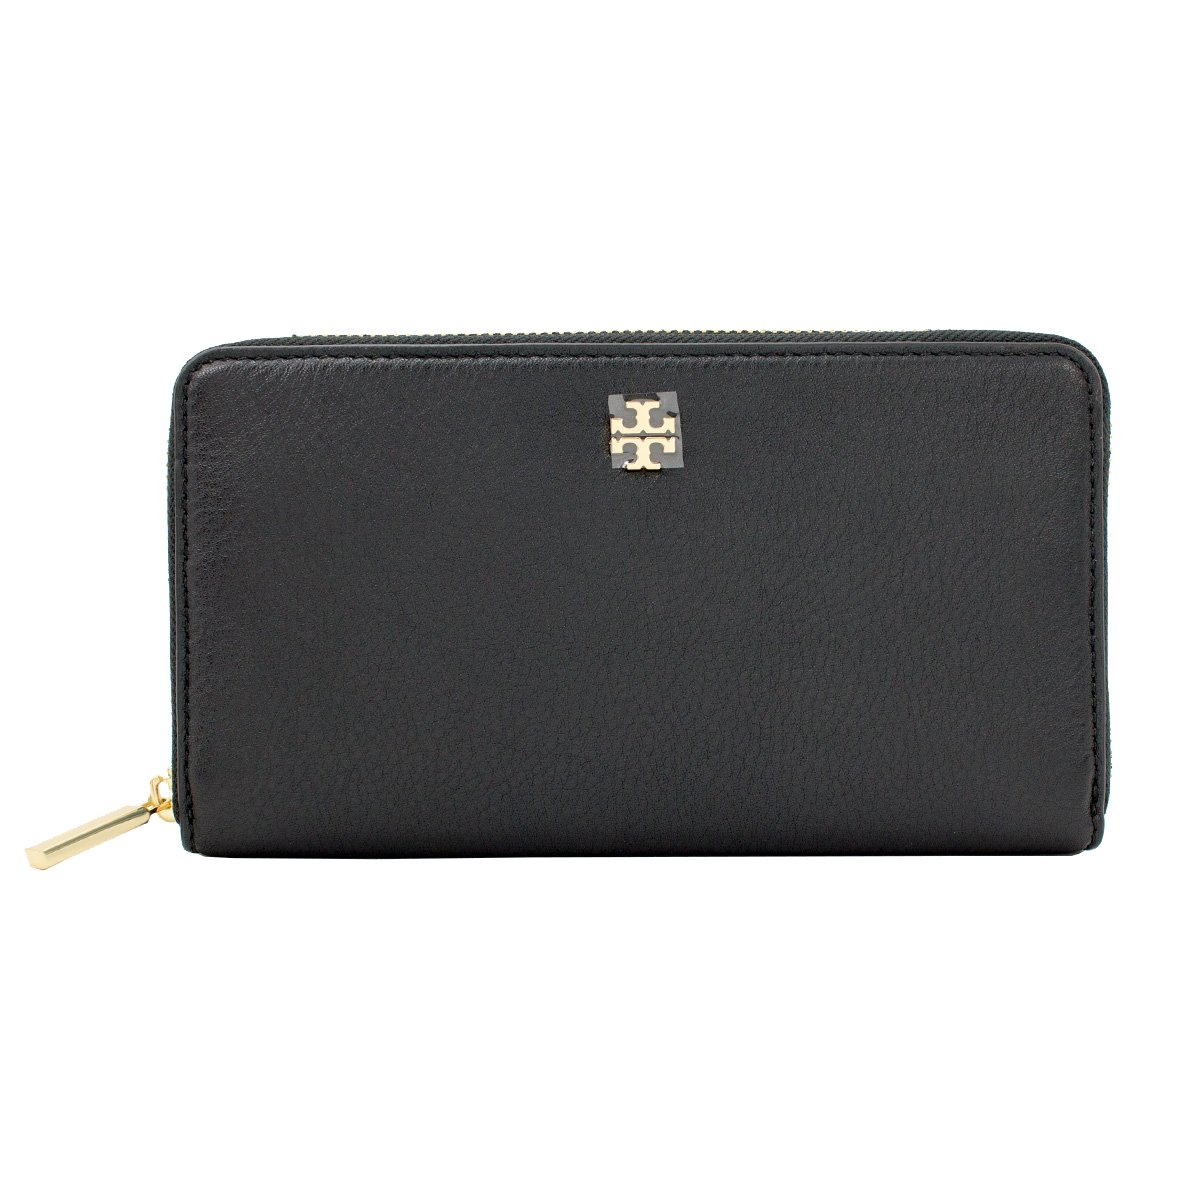 Tory Burch Mercer Zip Soft Pebbled Leather Continental Wallet Style No. 31412 (Black)